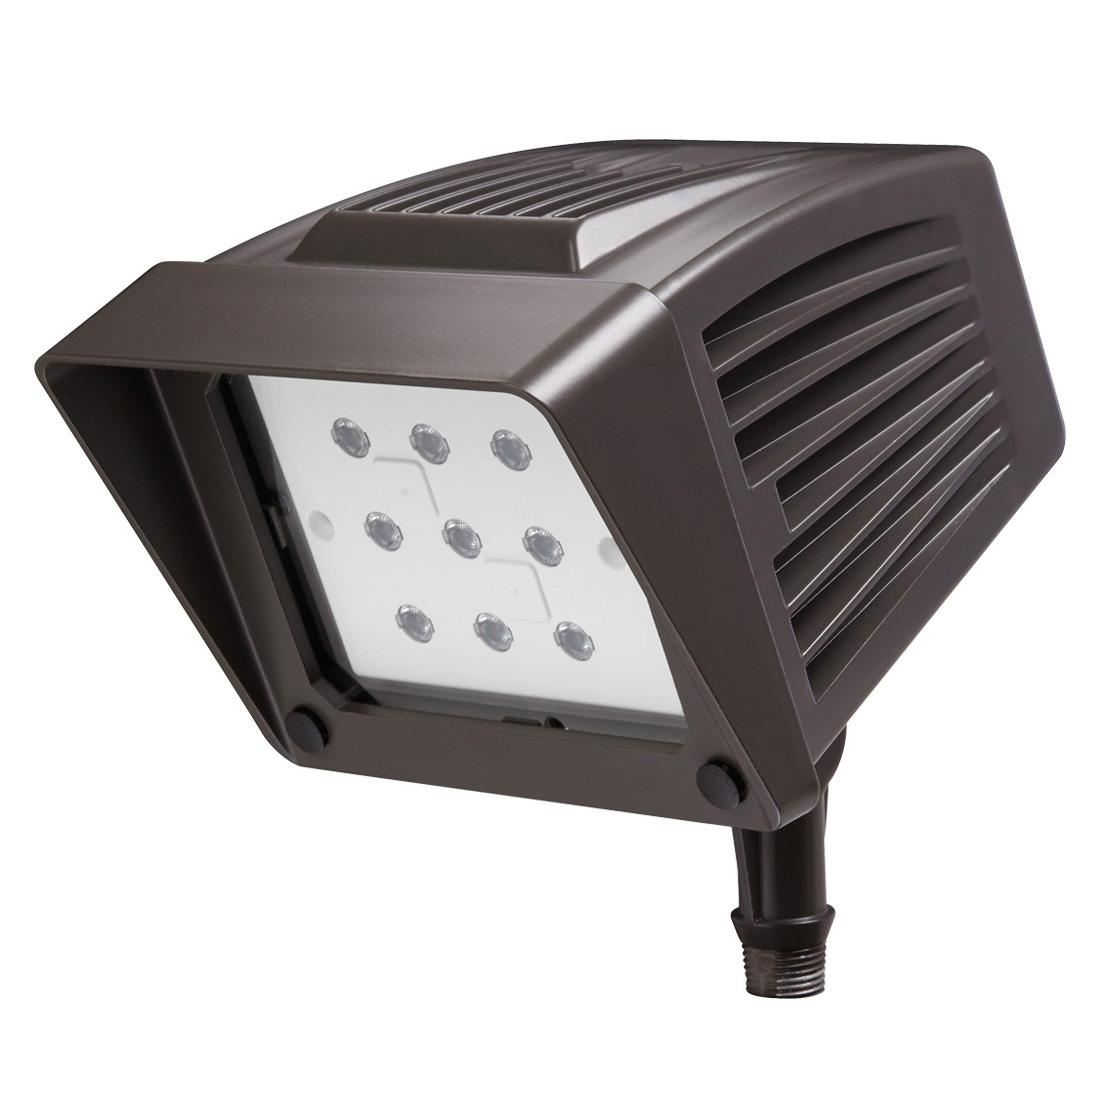 120 Volt Outdoor Led Light: Atlas Lighting PFS22LED LED Flood Light 92.5-Watt 120